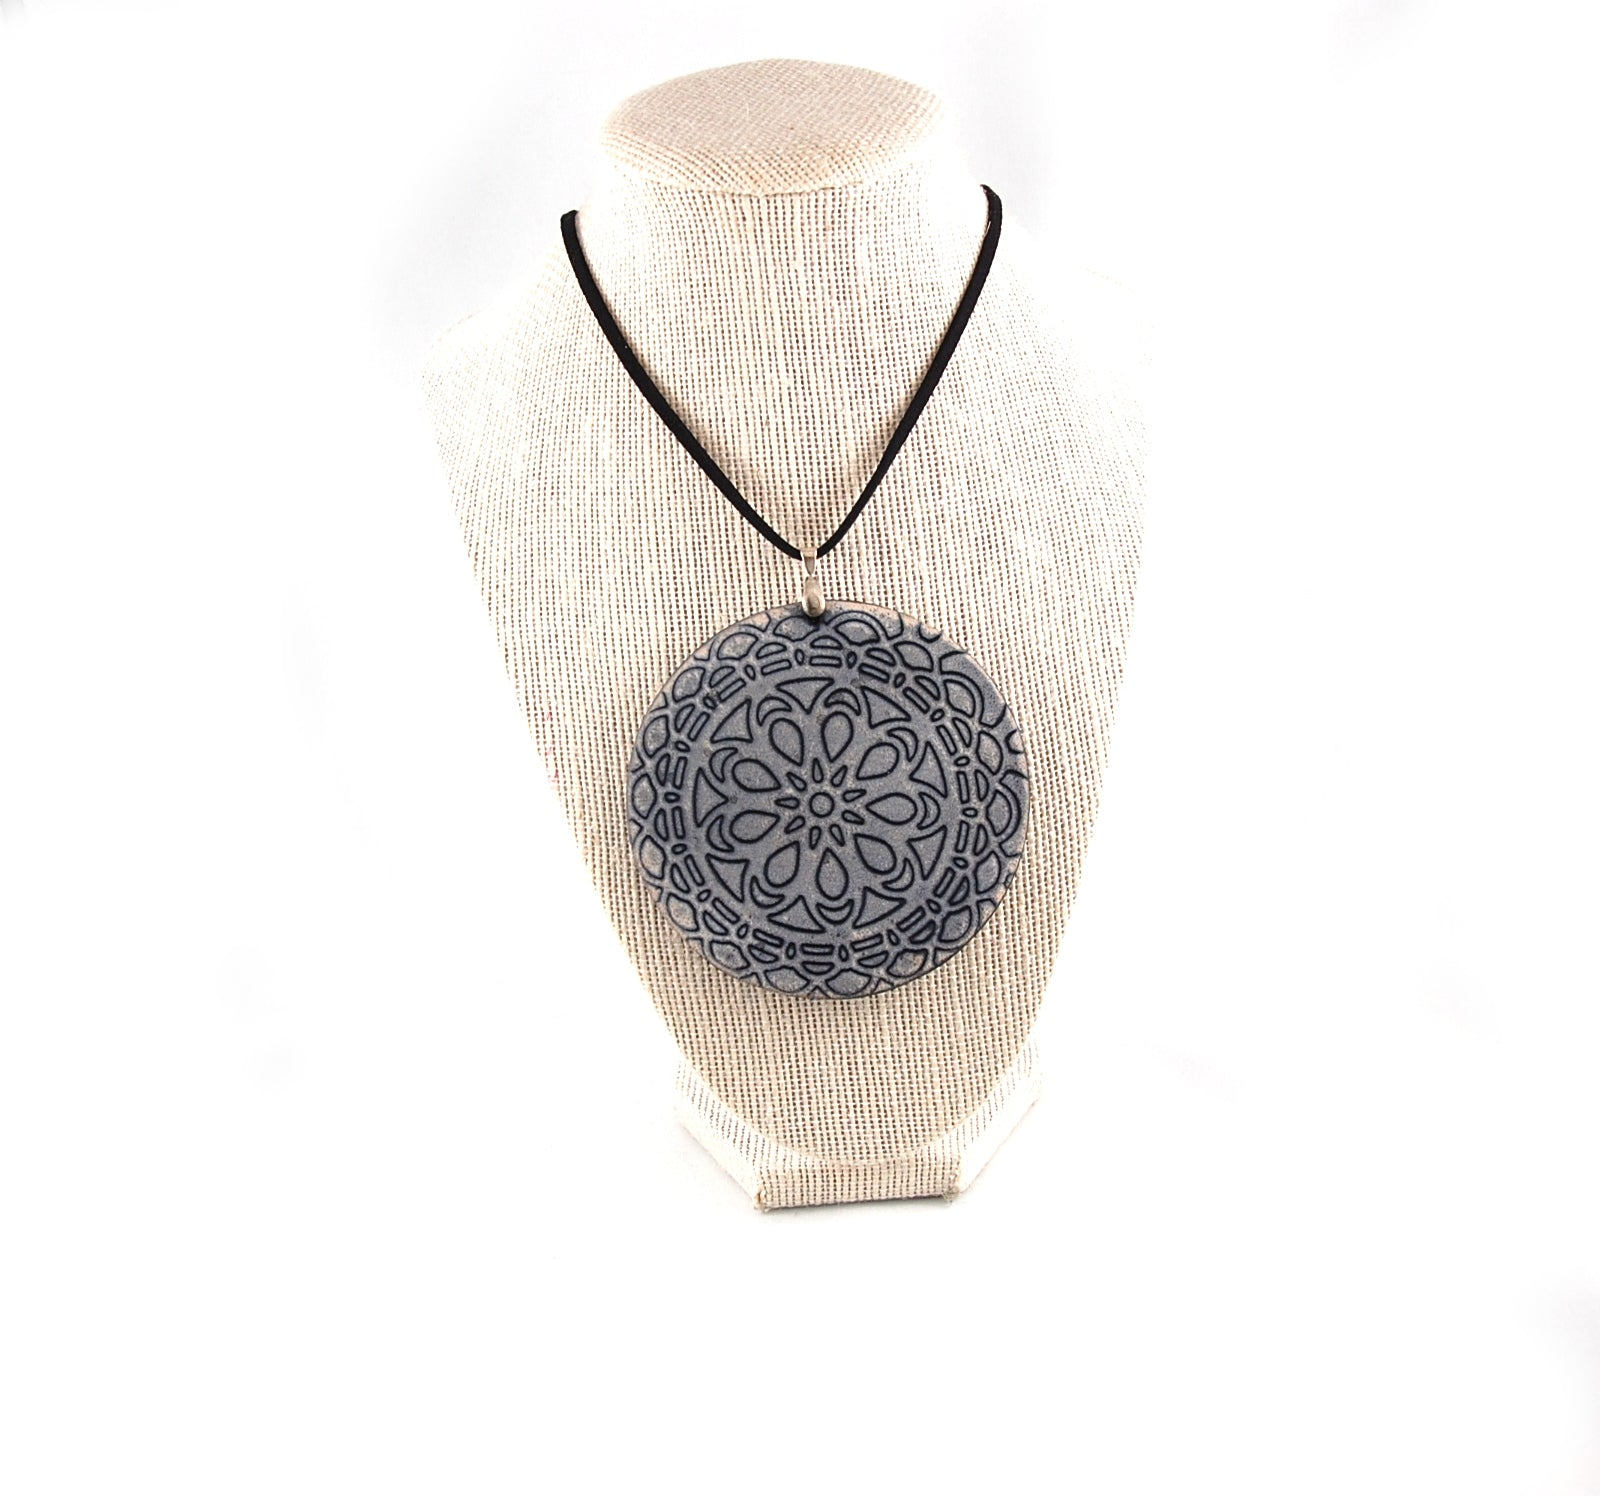 NL1 - Mandala Necklace Choker